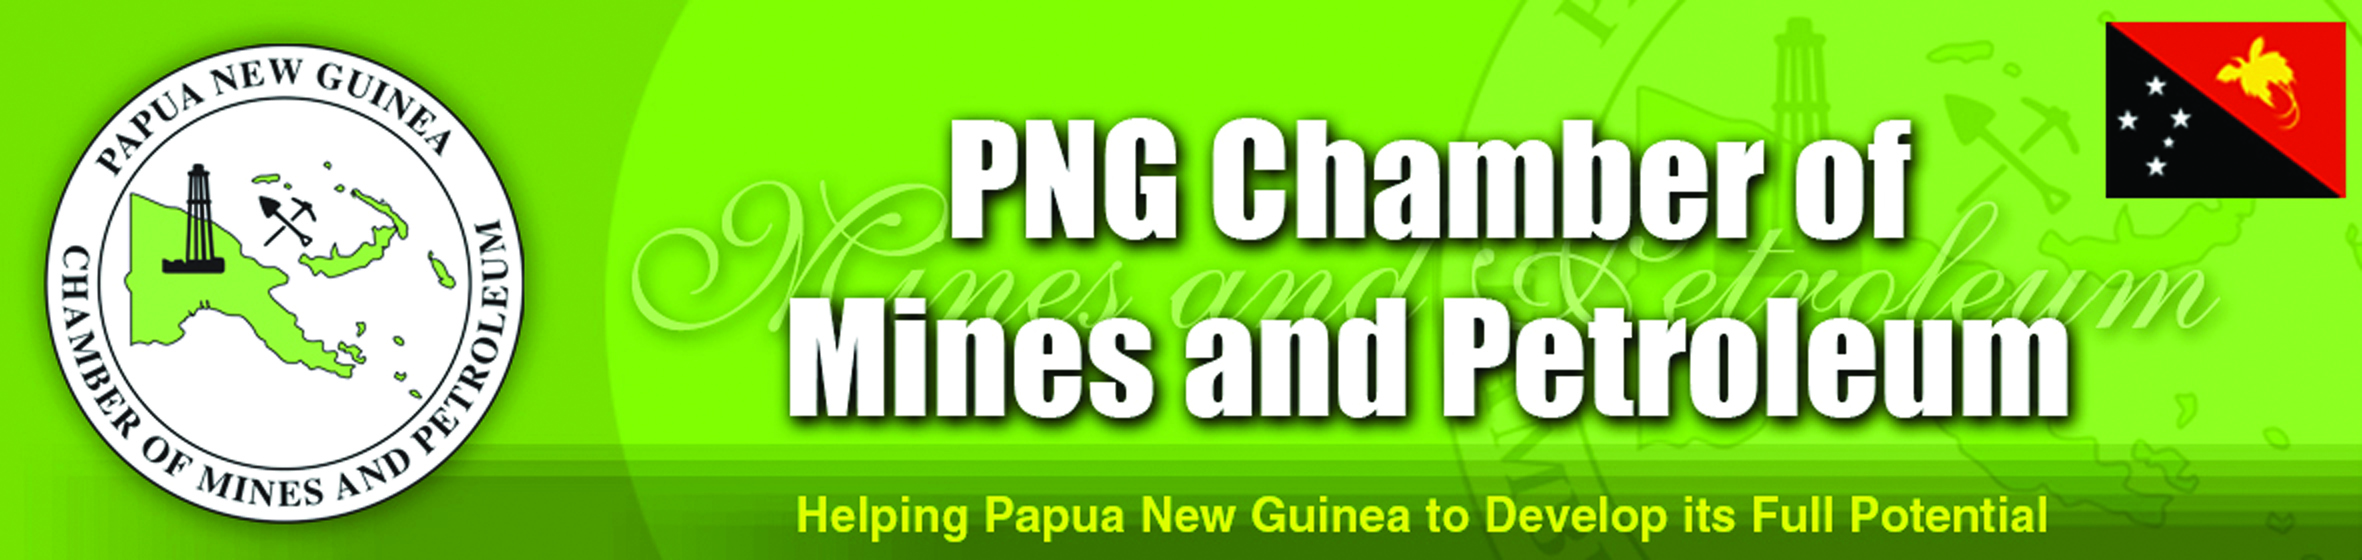 PNG Mining and Petroleum Conference 2021 Registration Open